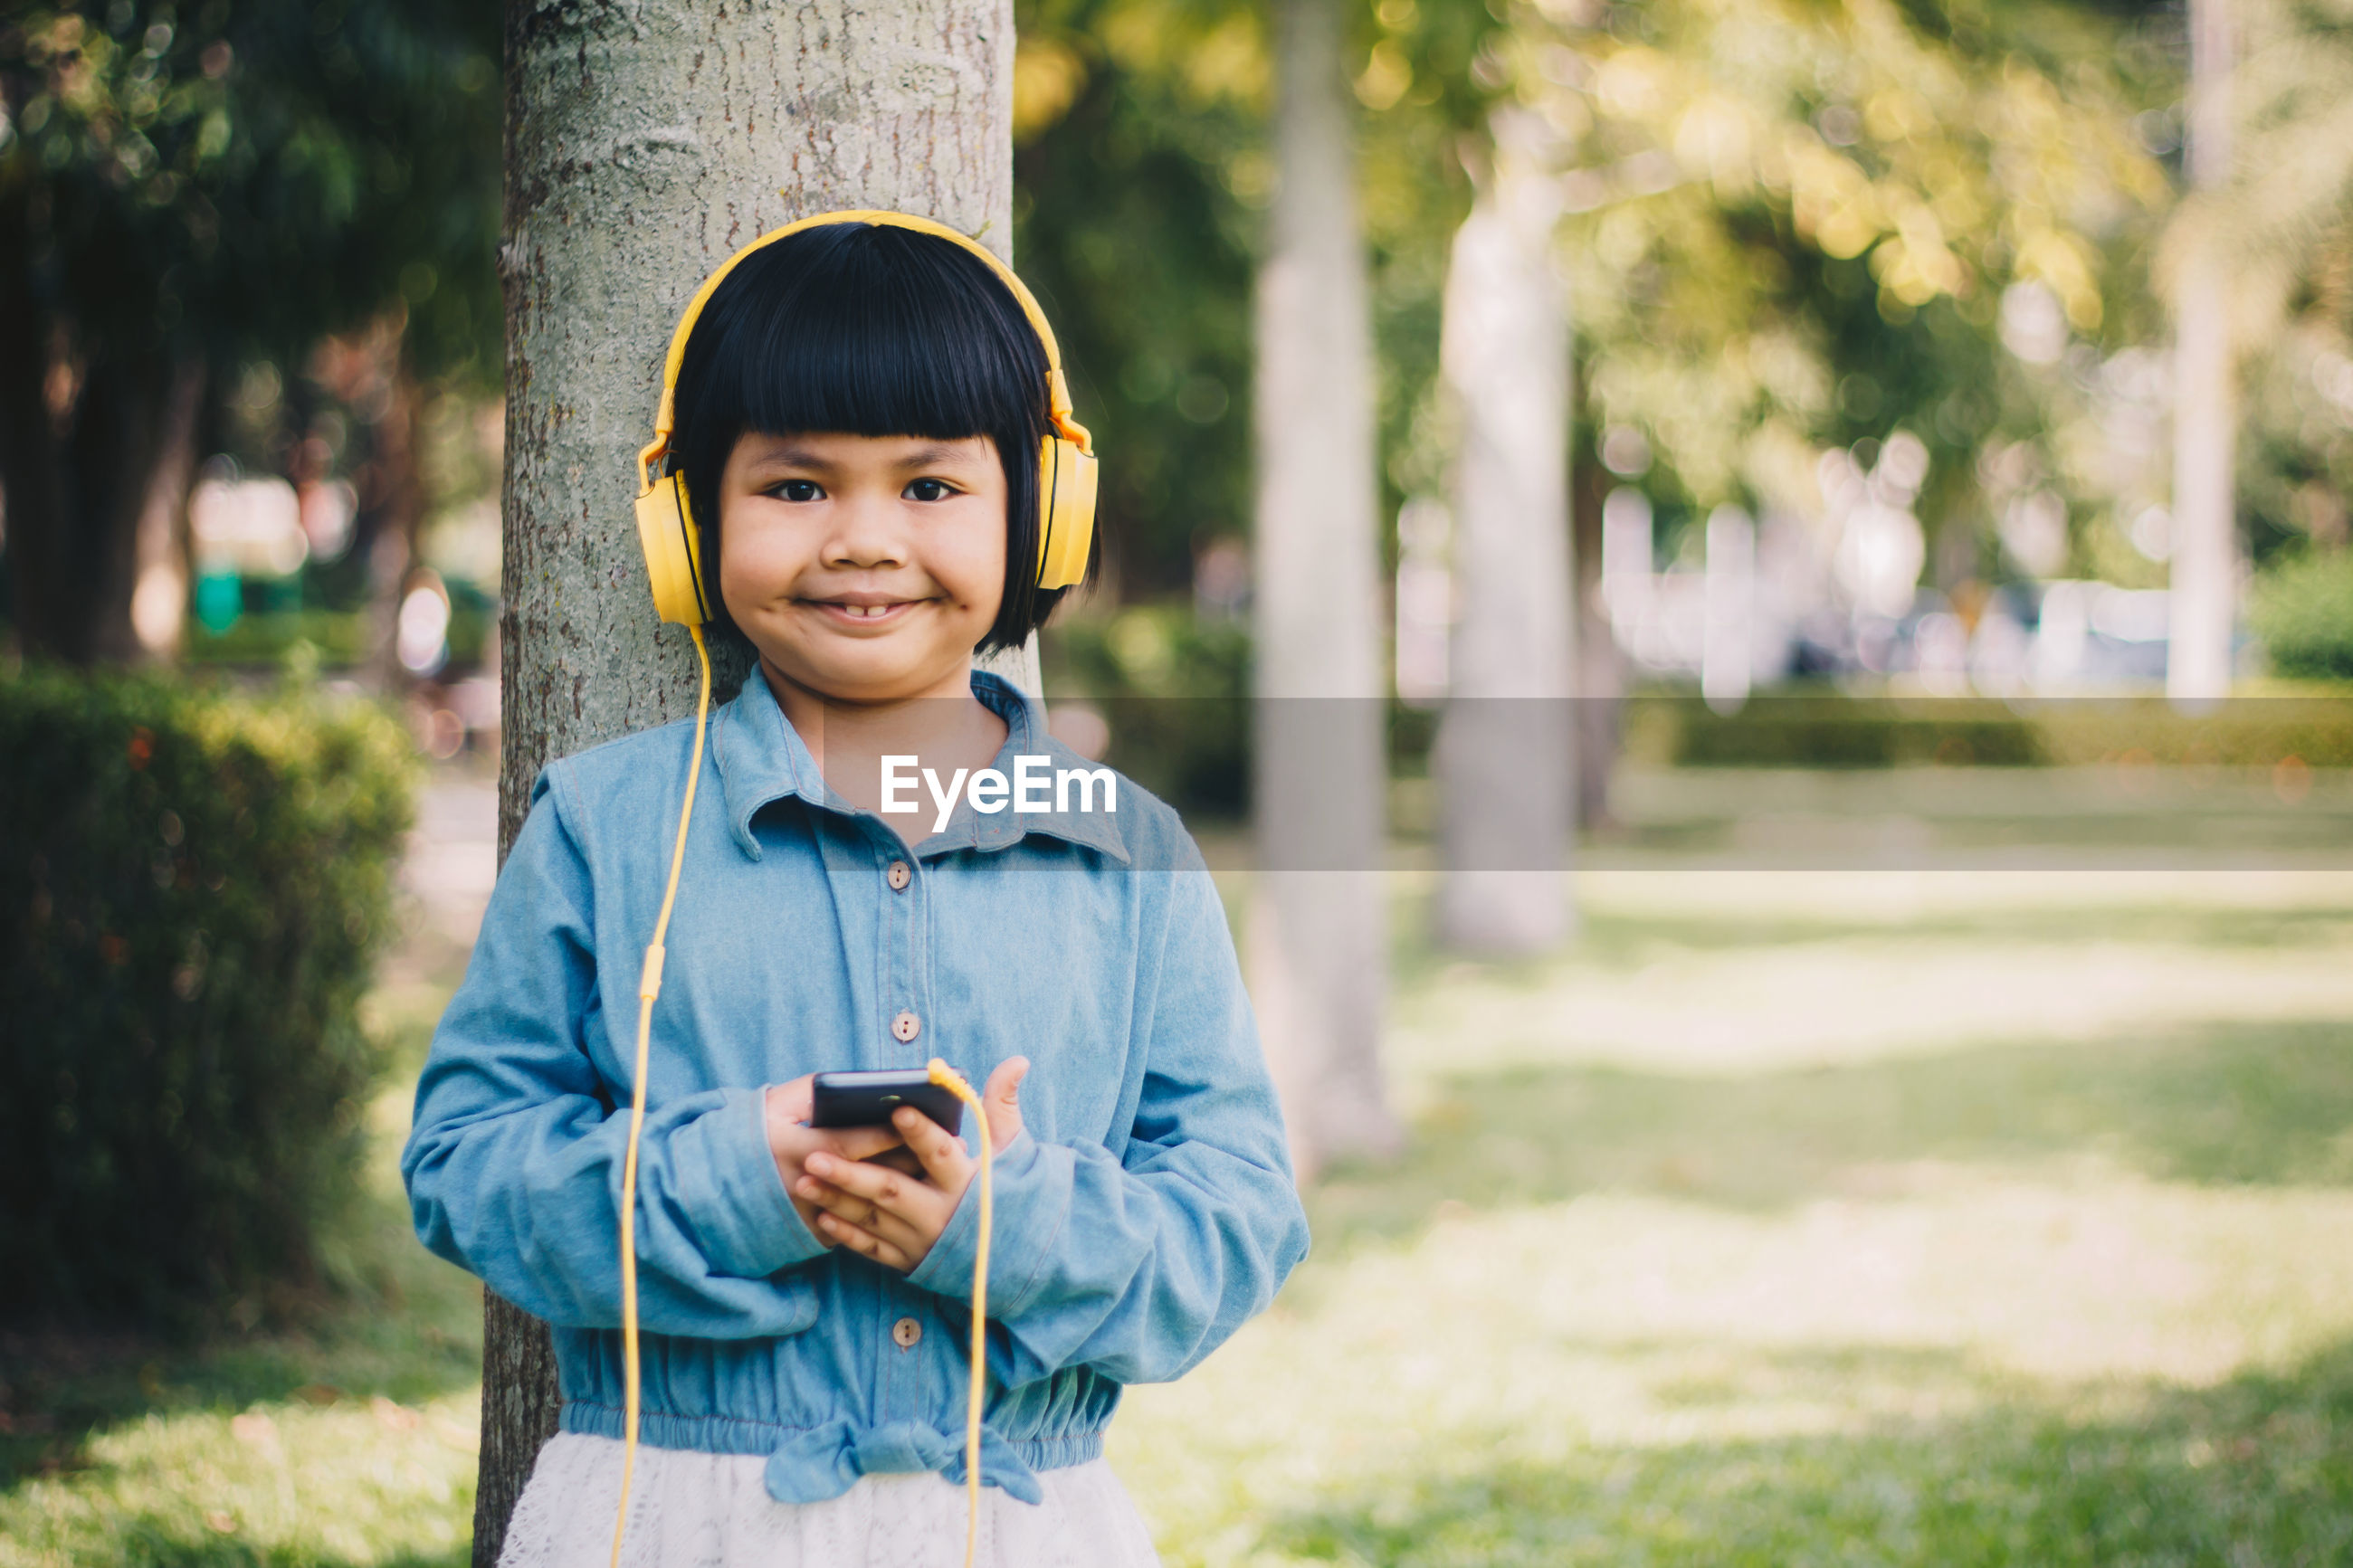 Portrait of smiling girl listening music on mobile phone while standing against tree trunk